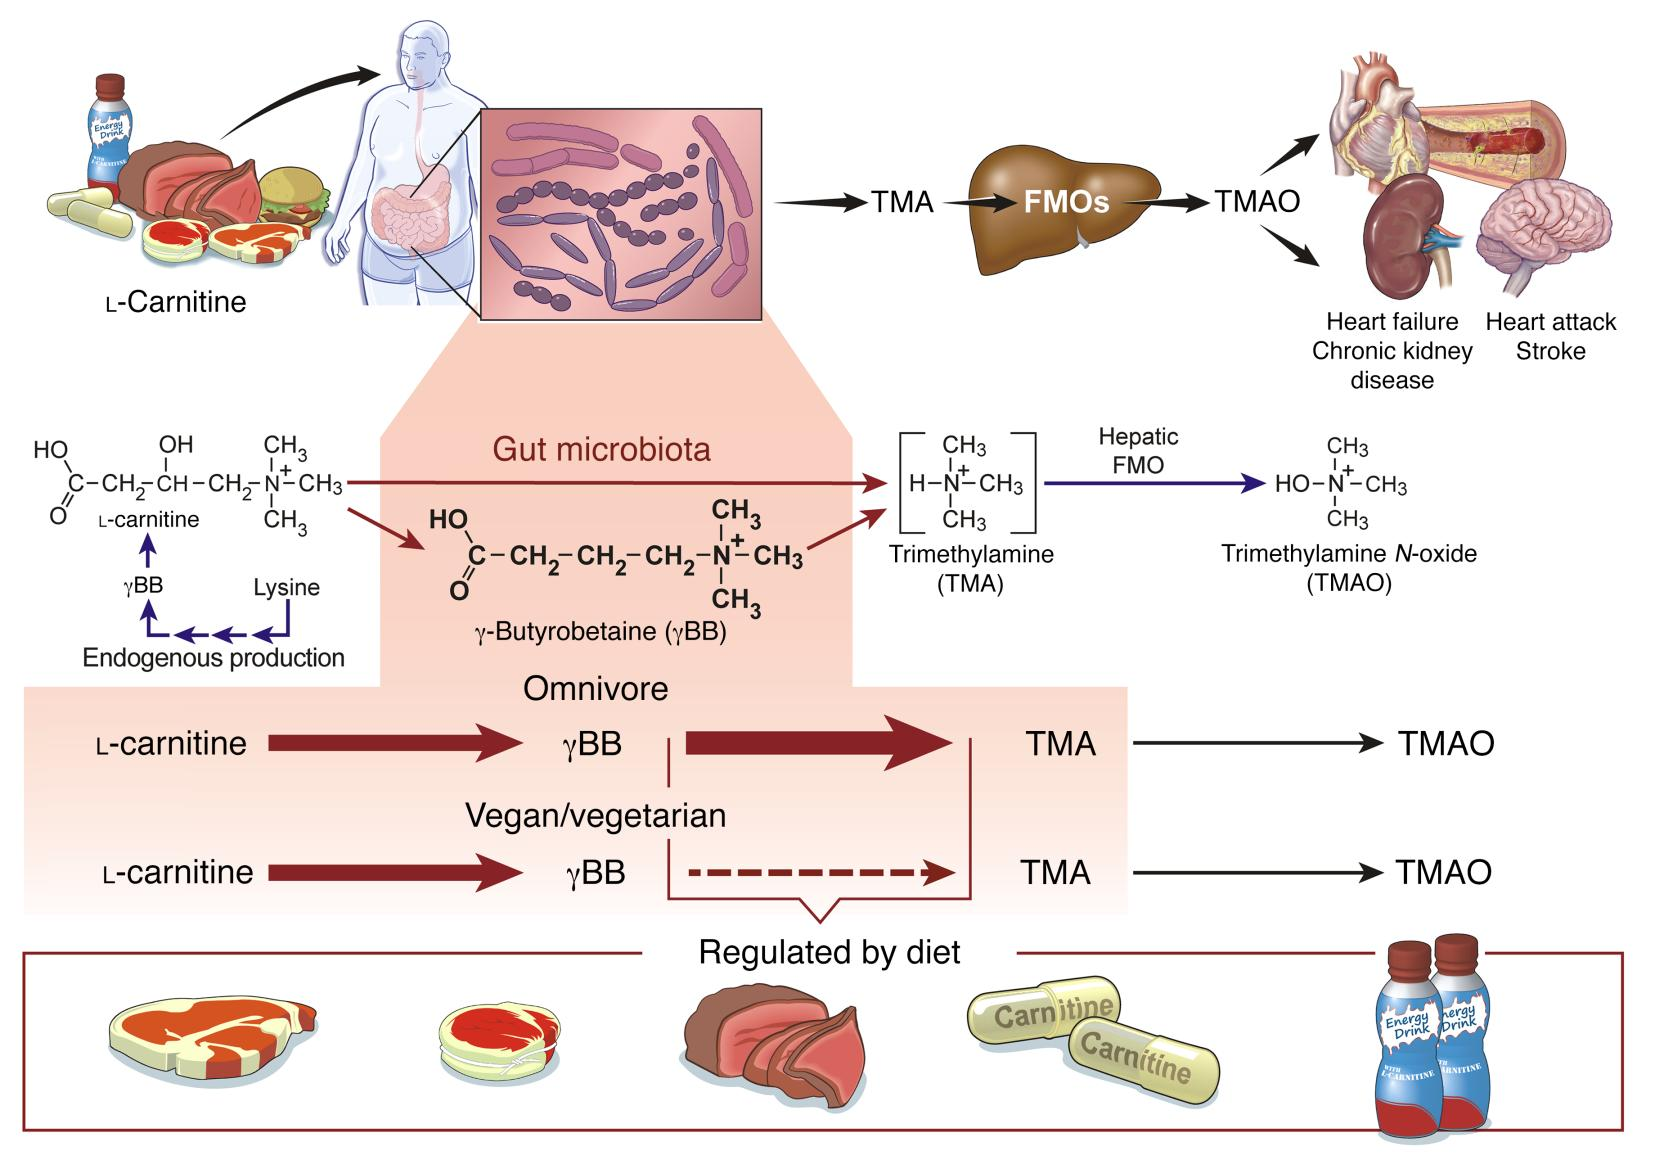 JCI - l-Carnitine in omnivorous diets induces an atherogenic